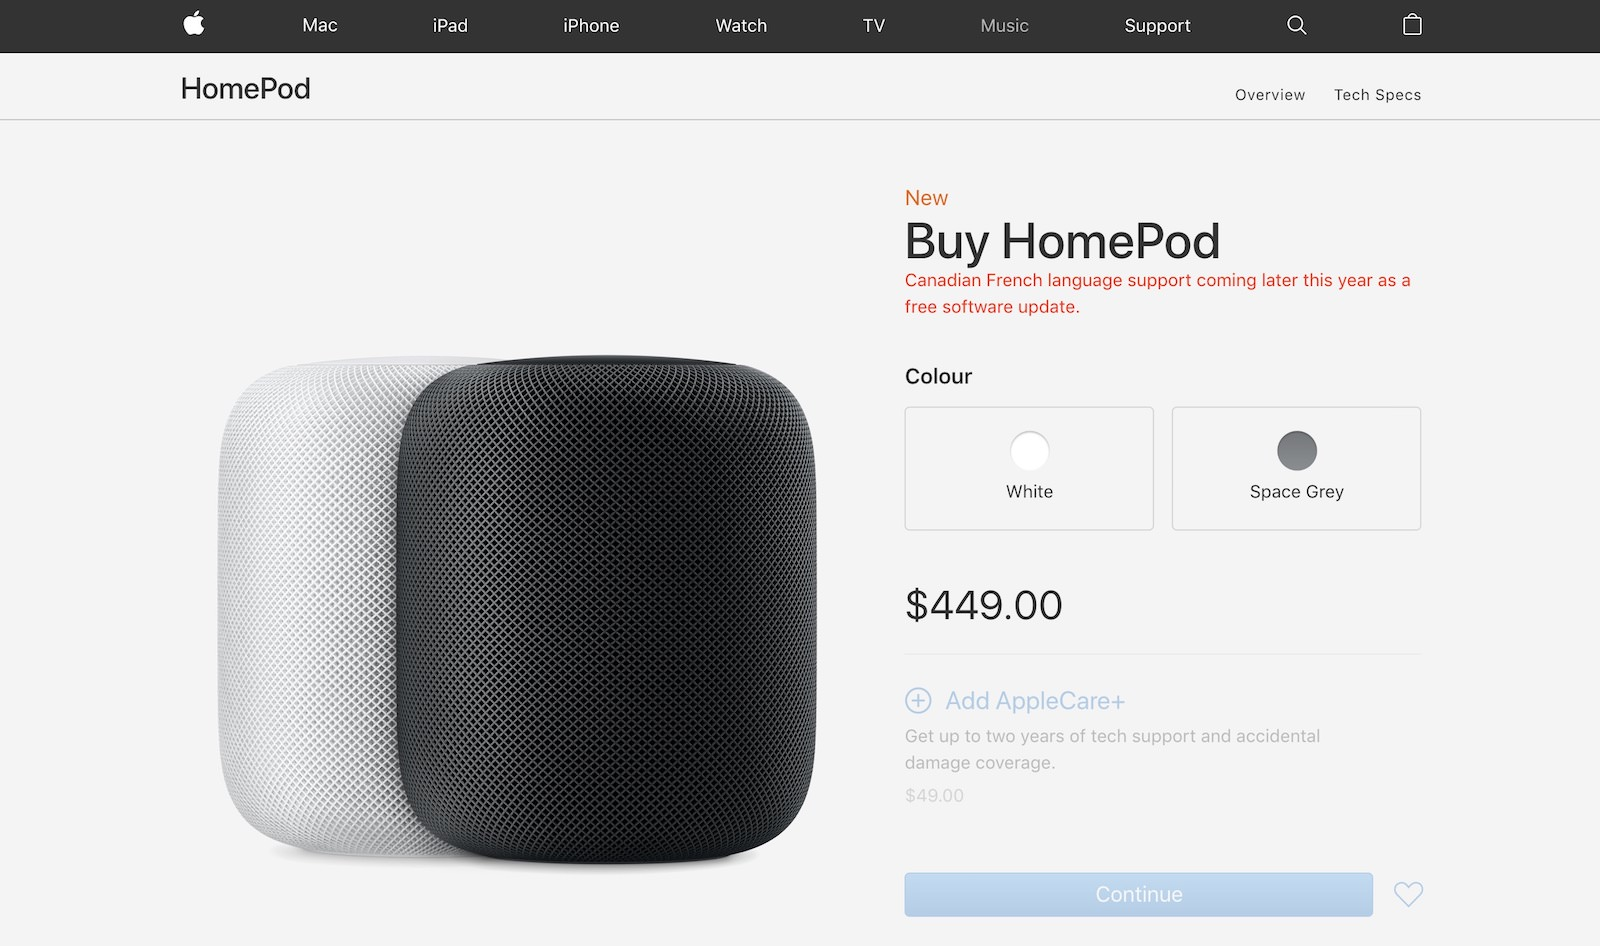 HomePod goes on sale in 3 new countries